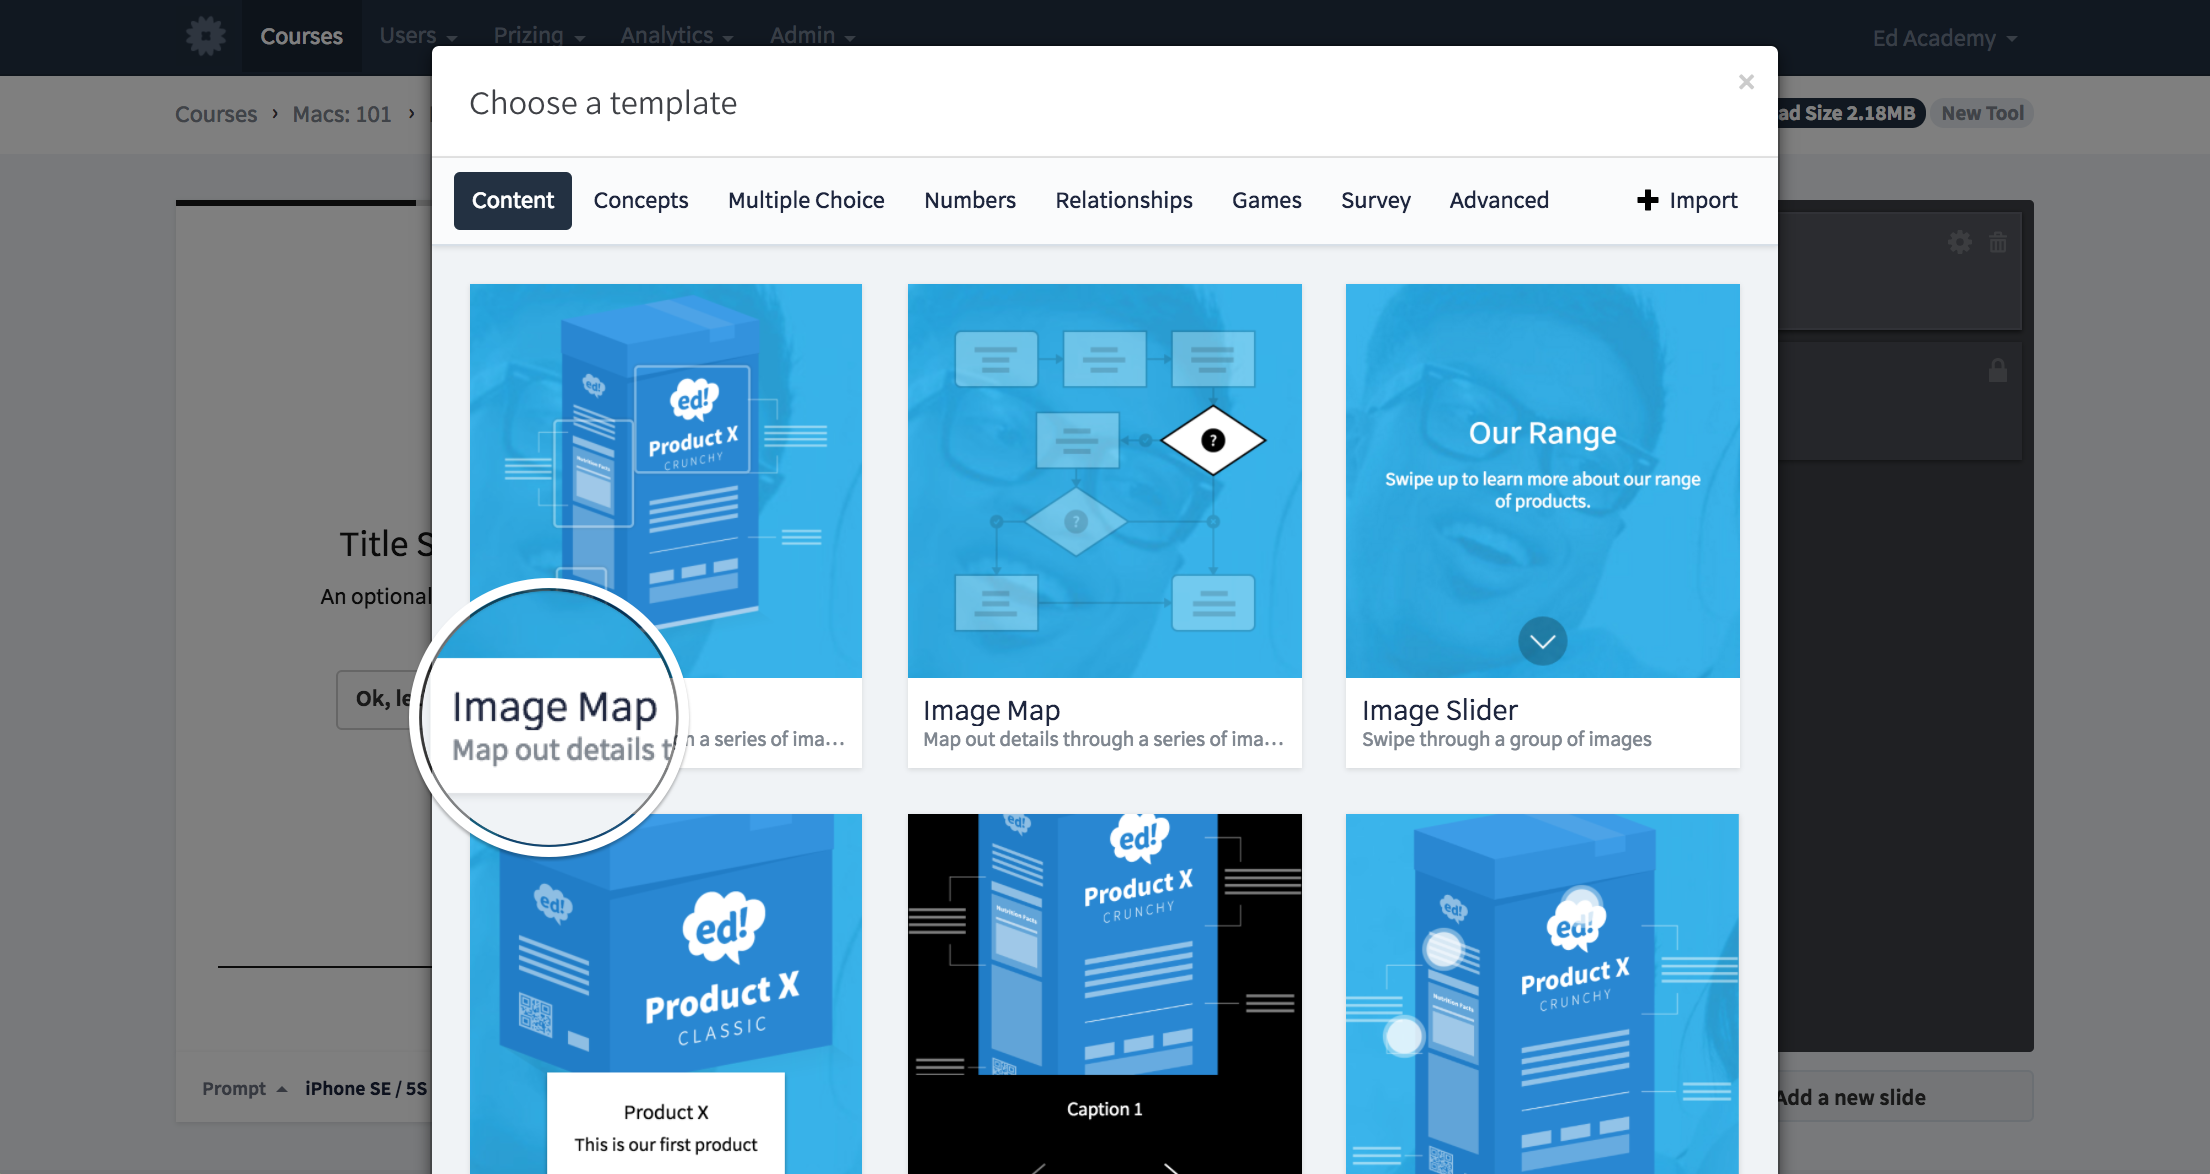 User Guide: Image Map